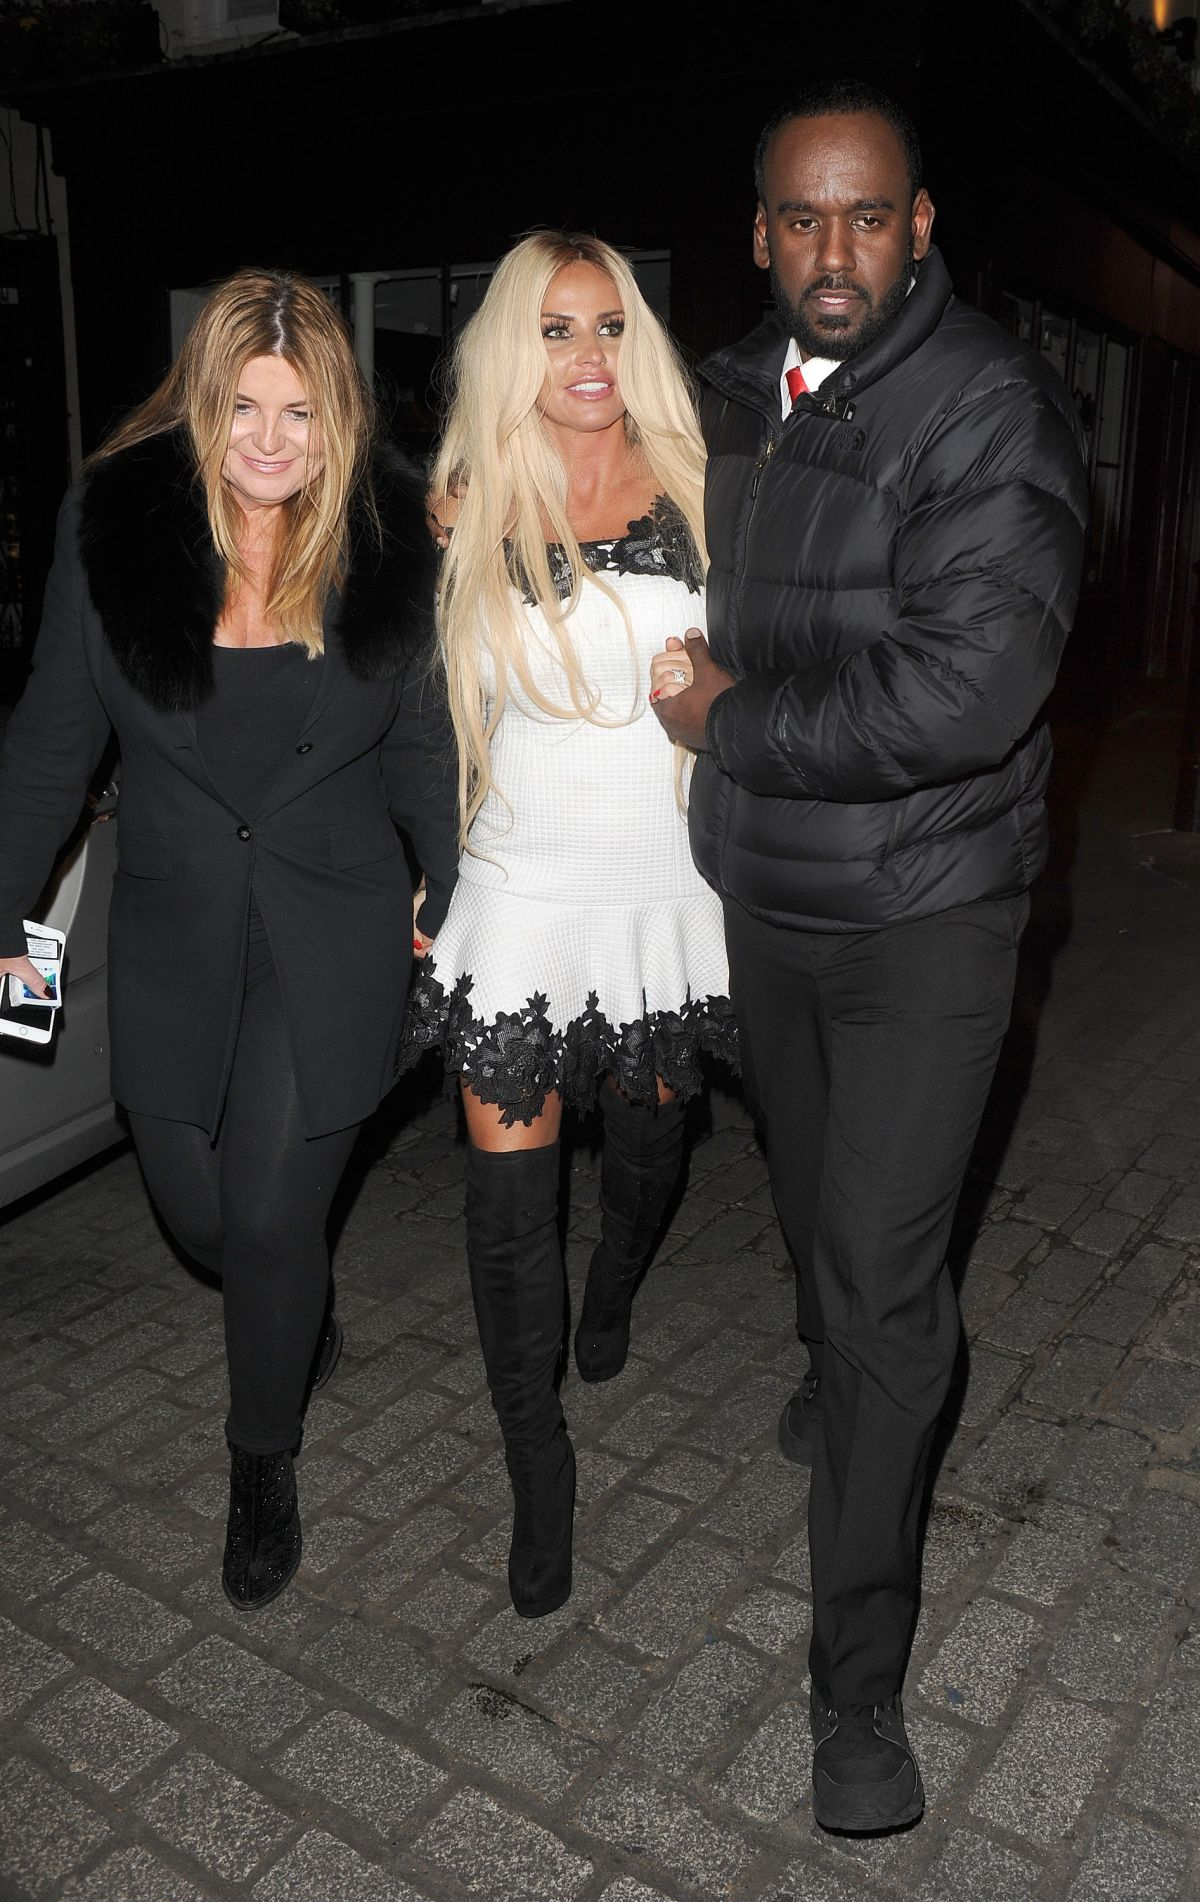 Katie Price Out for the evening in London   katie-price-out-for-the-evening-in-london_18